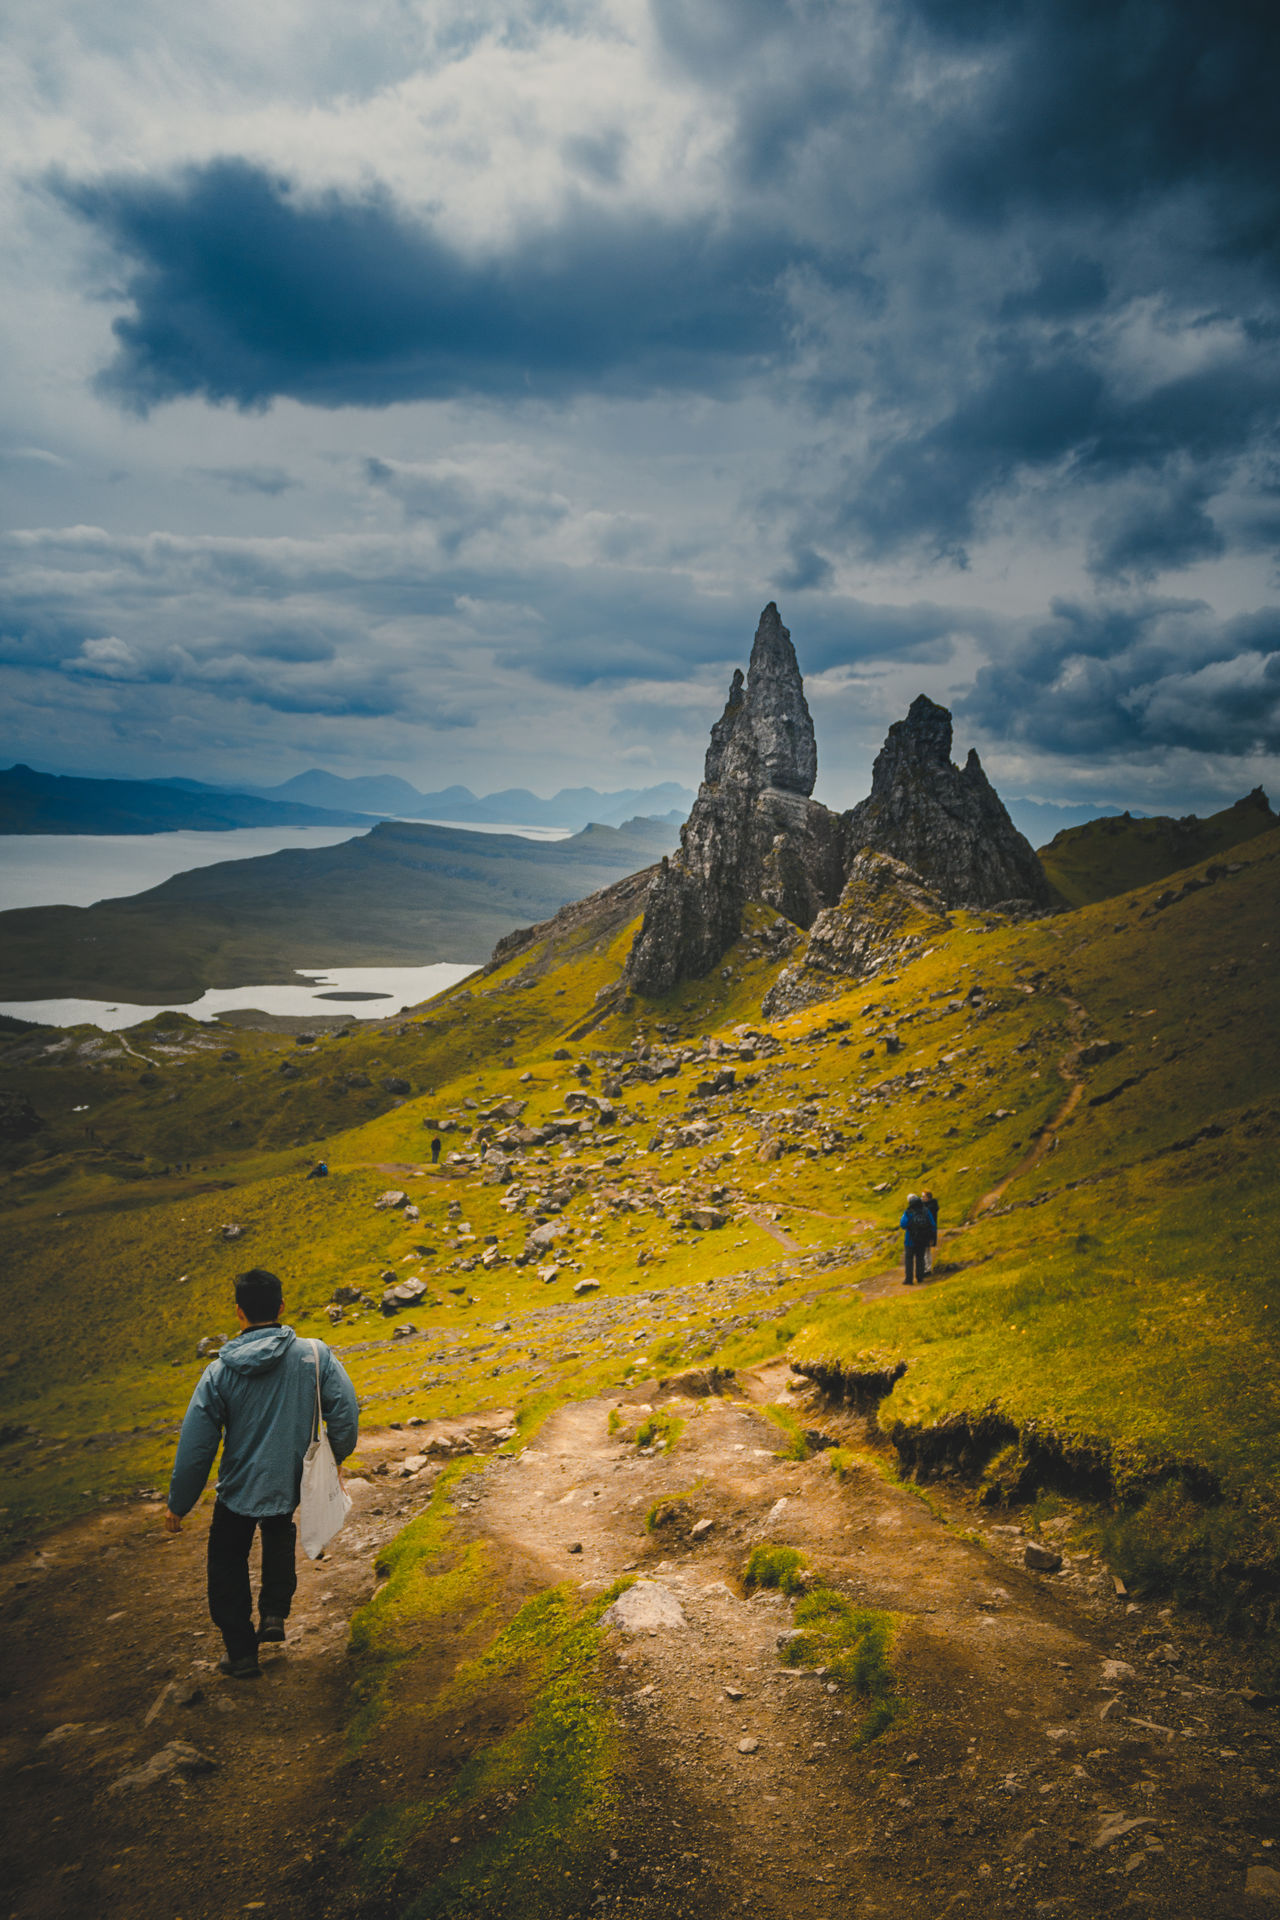 Mountain Hiking One Man Only Adventure One Person Tourism Walking Vacations Scenics Travel Travel Destinations Exploration Adult Landscape Mountain Range EyeEm Love Beauty EyeEm Best Shots Eye4photography  New Outdoors The Great Outdoors - 2017 EyeEm Awards Epic Scotland